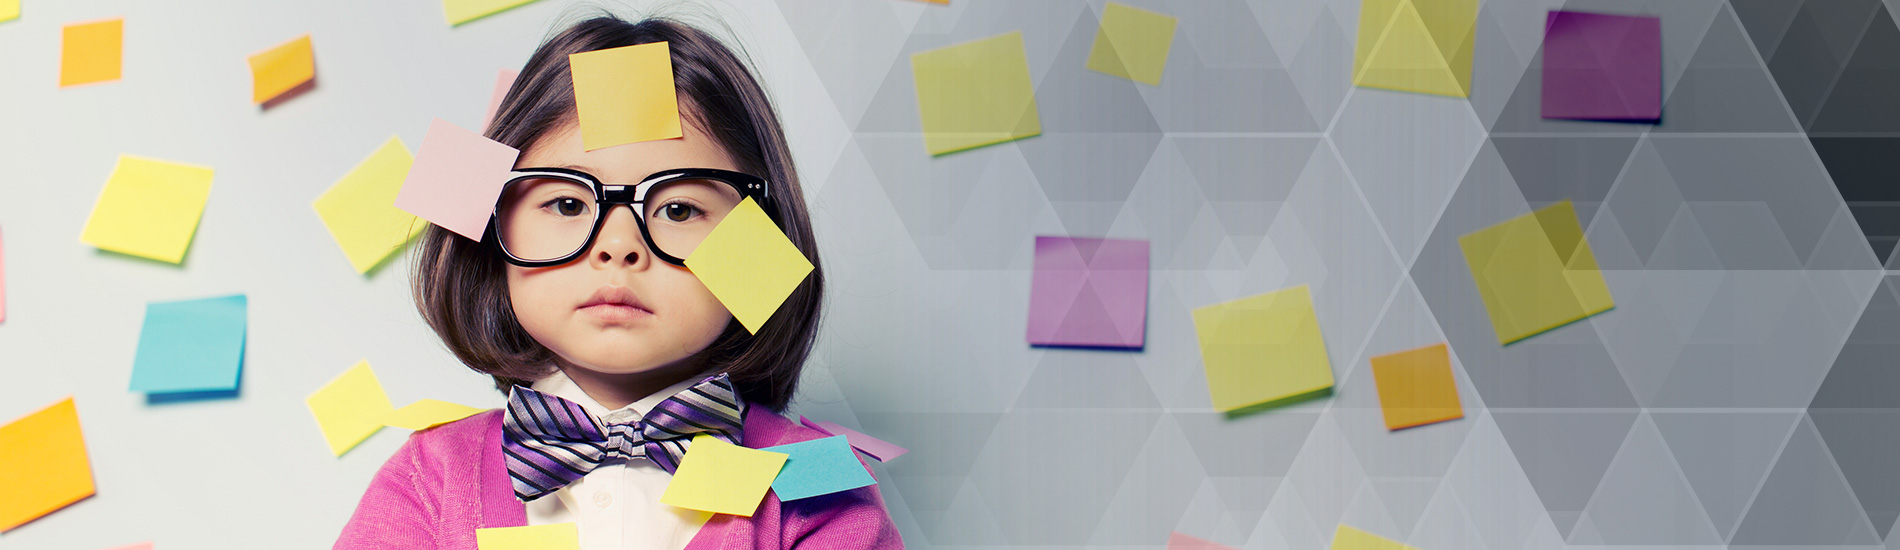 Microsoft Office 365 Services Milwaukee